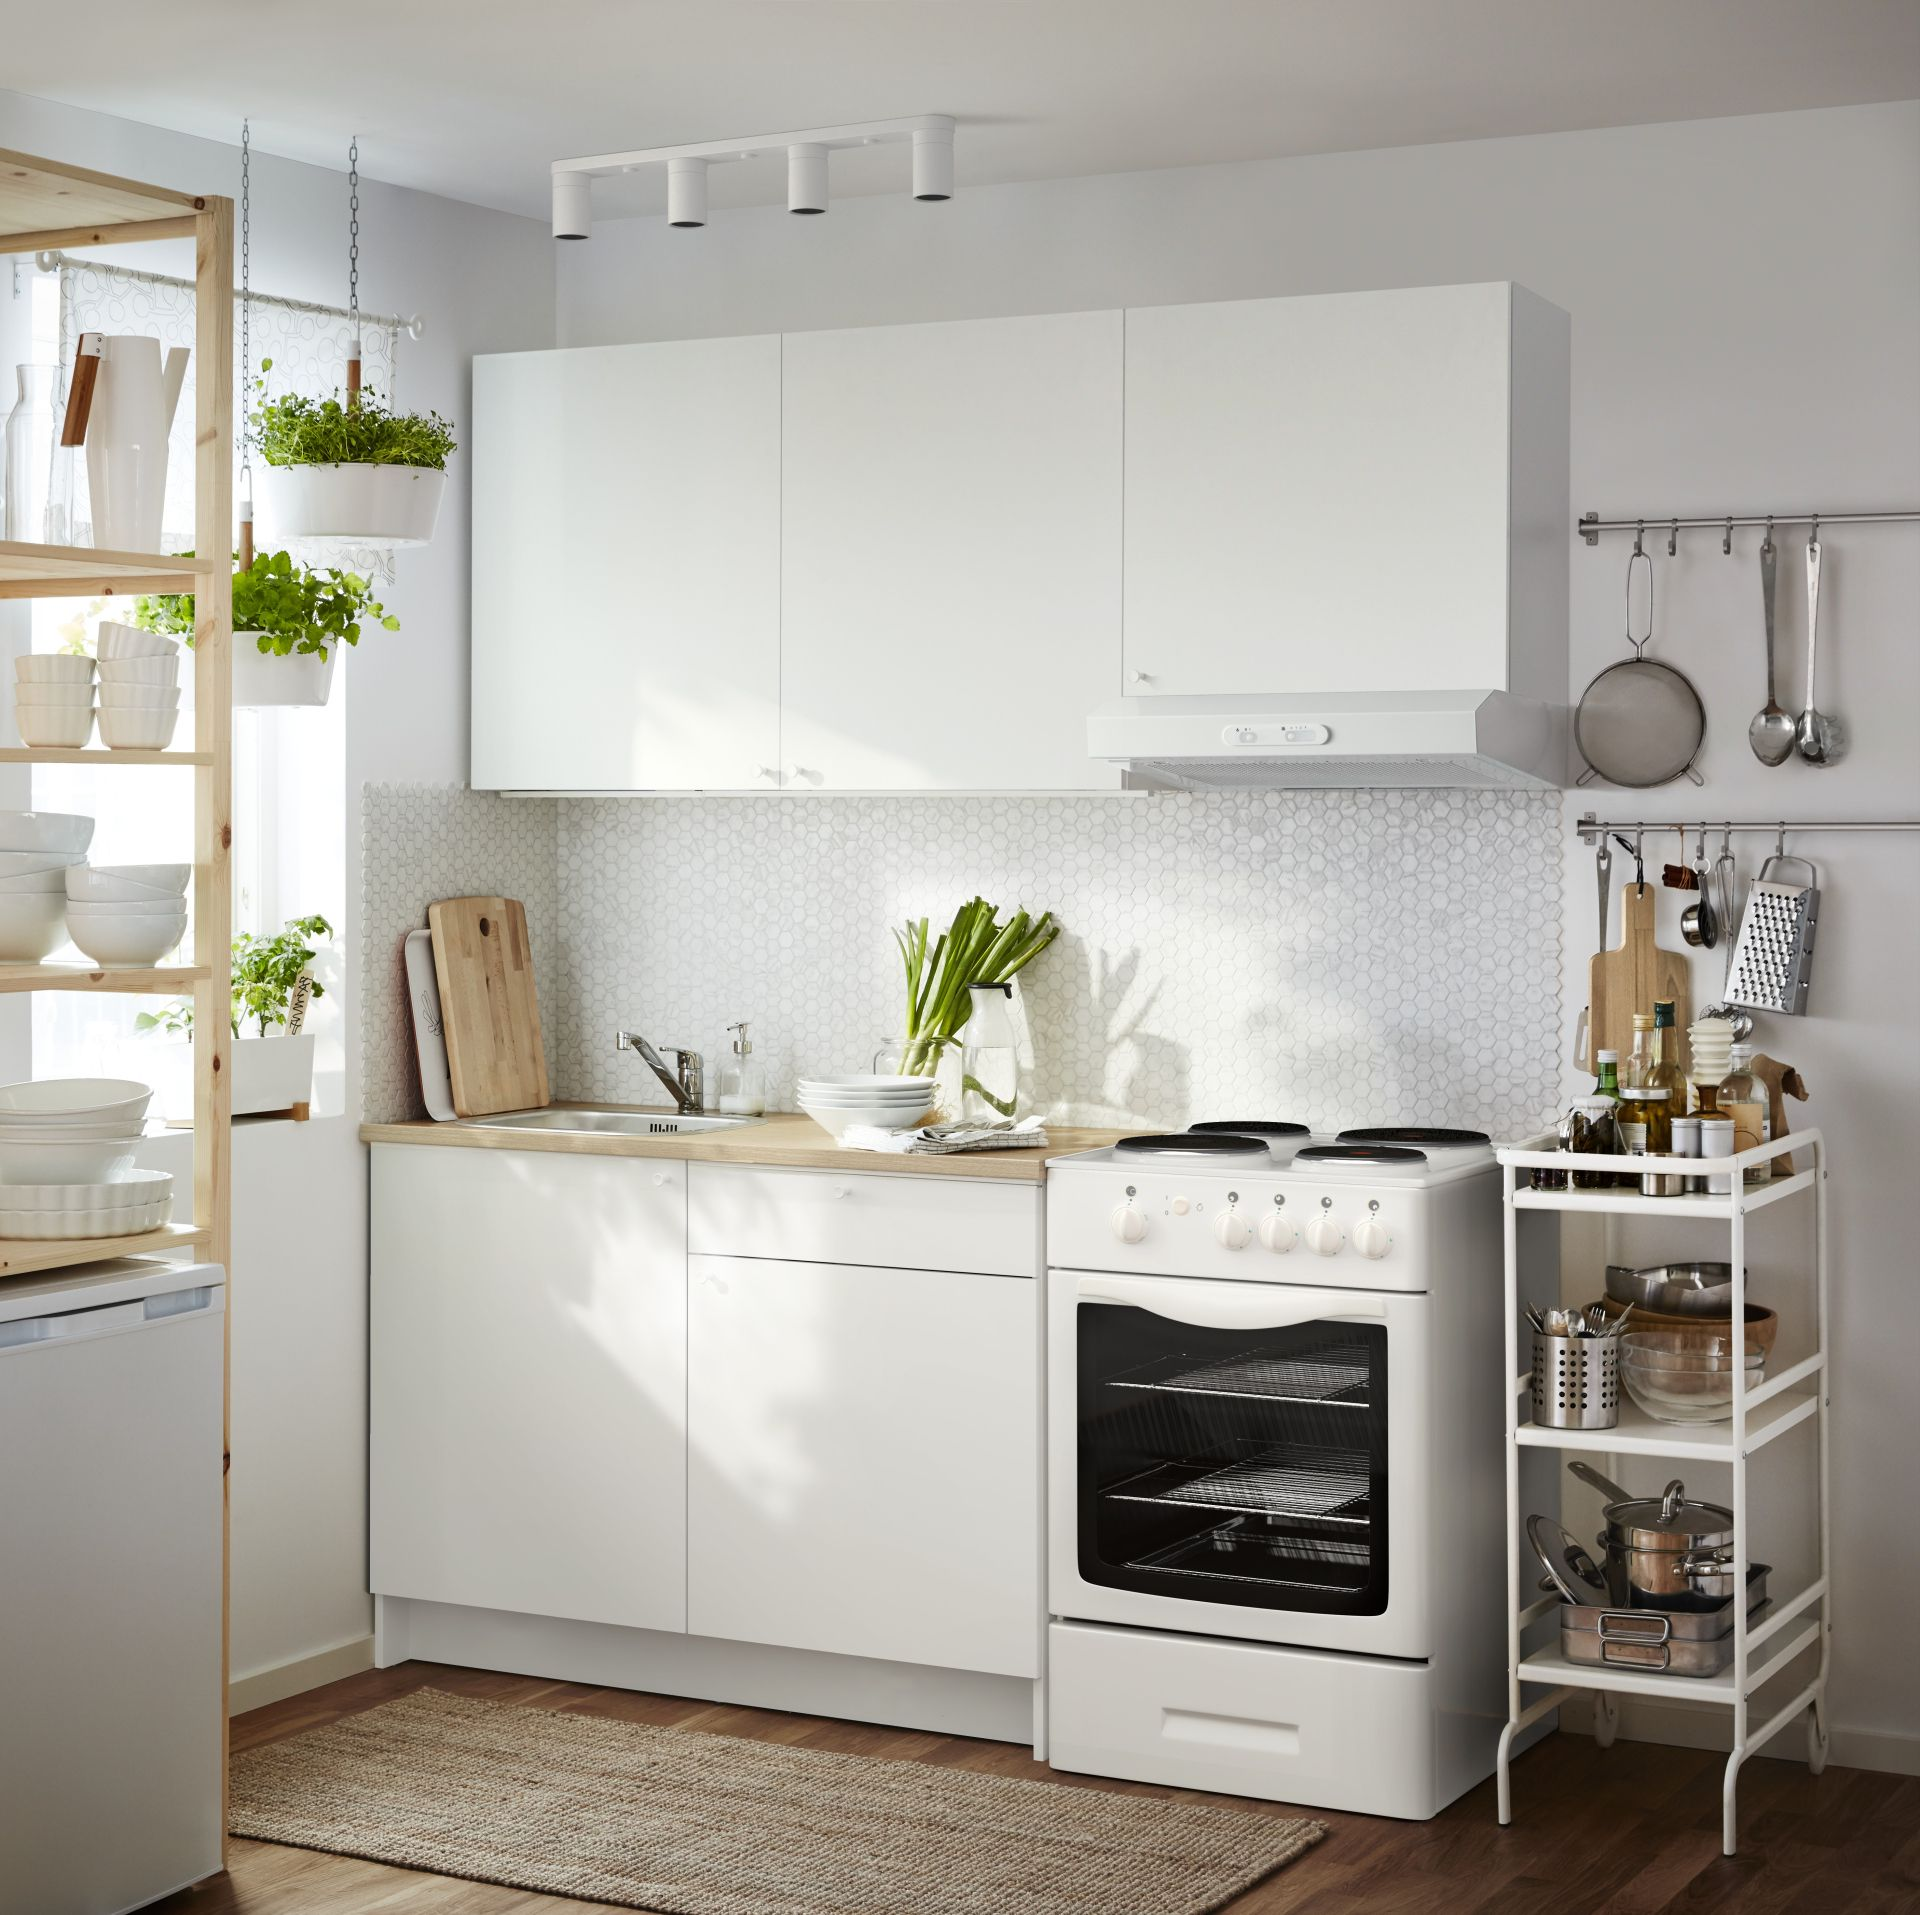 Lagan Afzuigkap Wand Wit Kitchens Ikea Kitchen Condo Kitchen